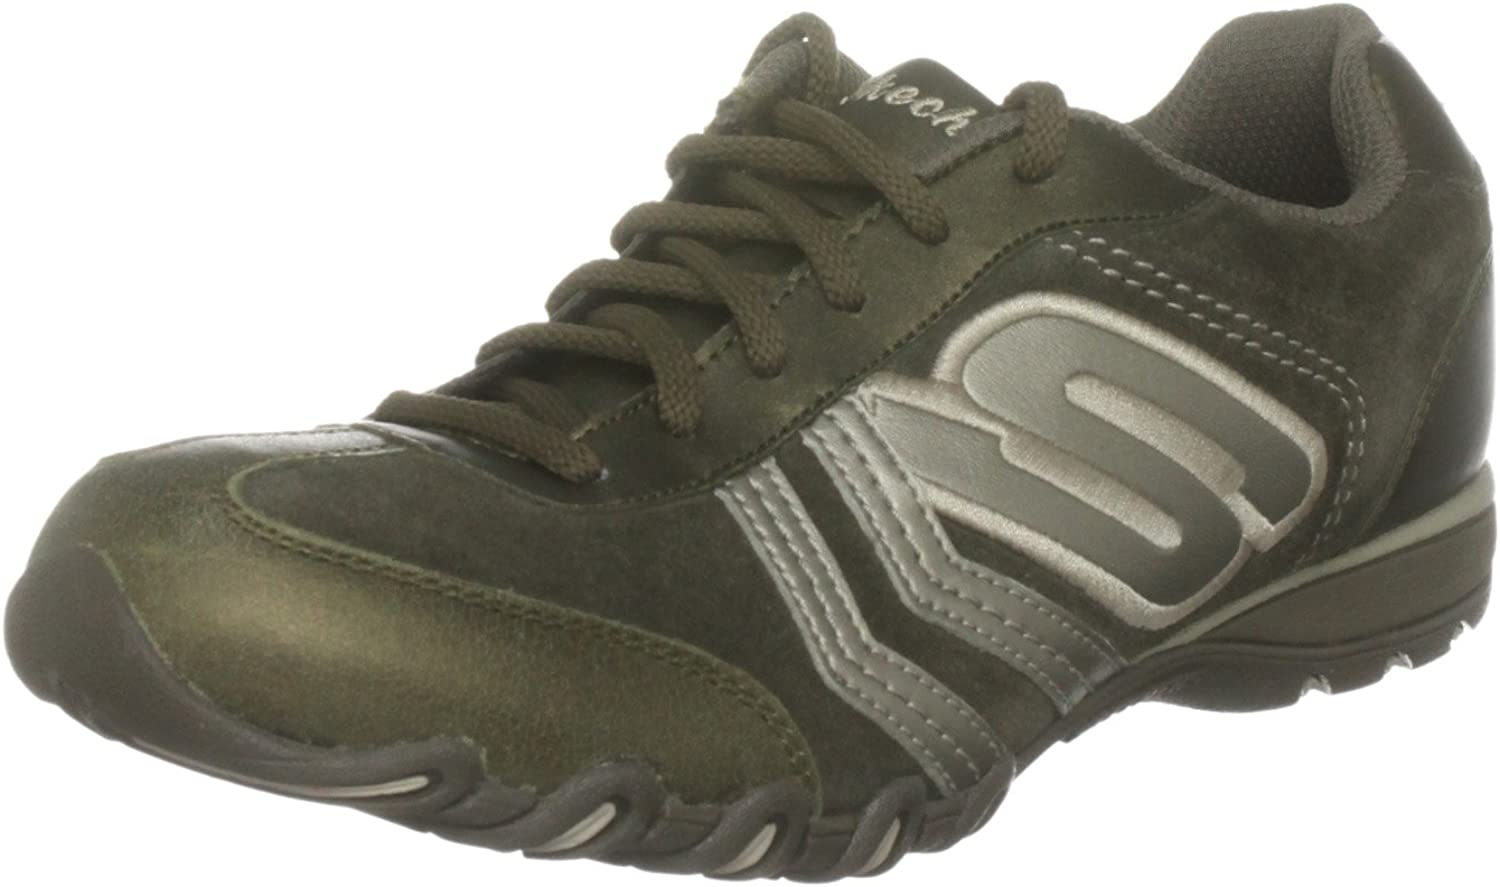 Skechers Women's Leather Fashion-Sneakers 4 UK Olive